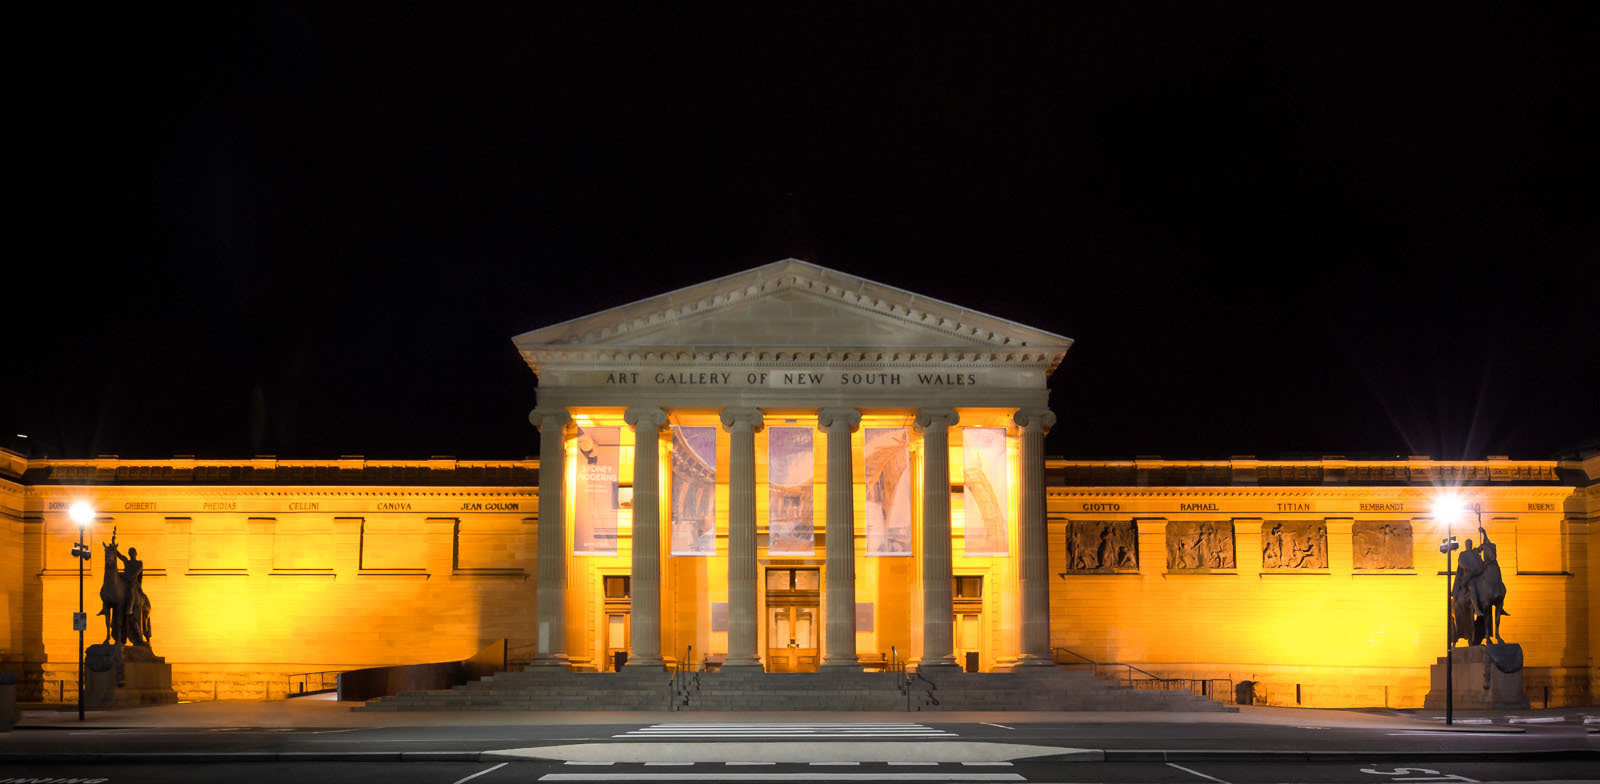 File:Art Gallery of New South Wales at night.jpg - Wikimedia Commons